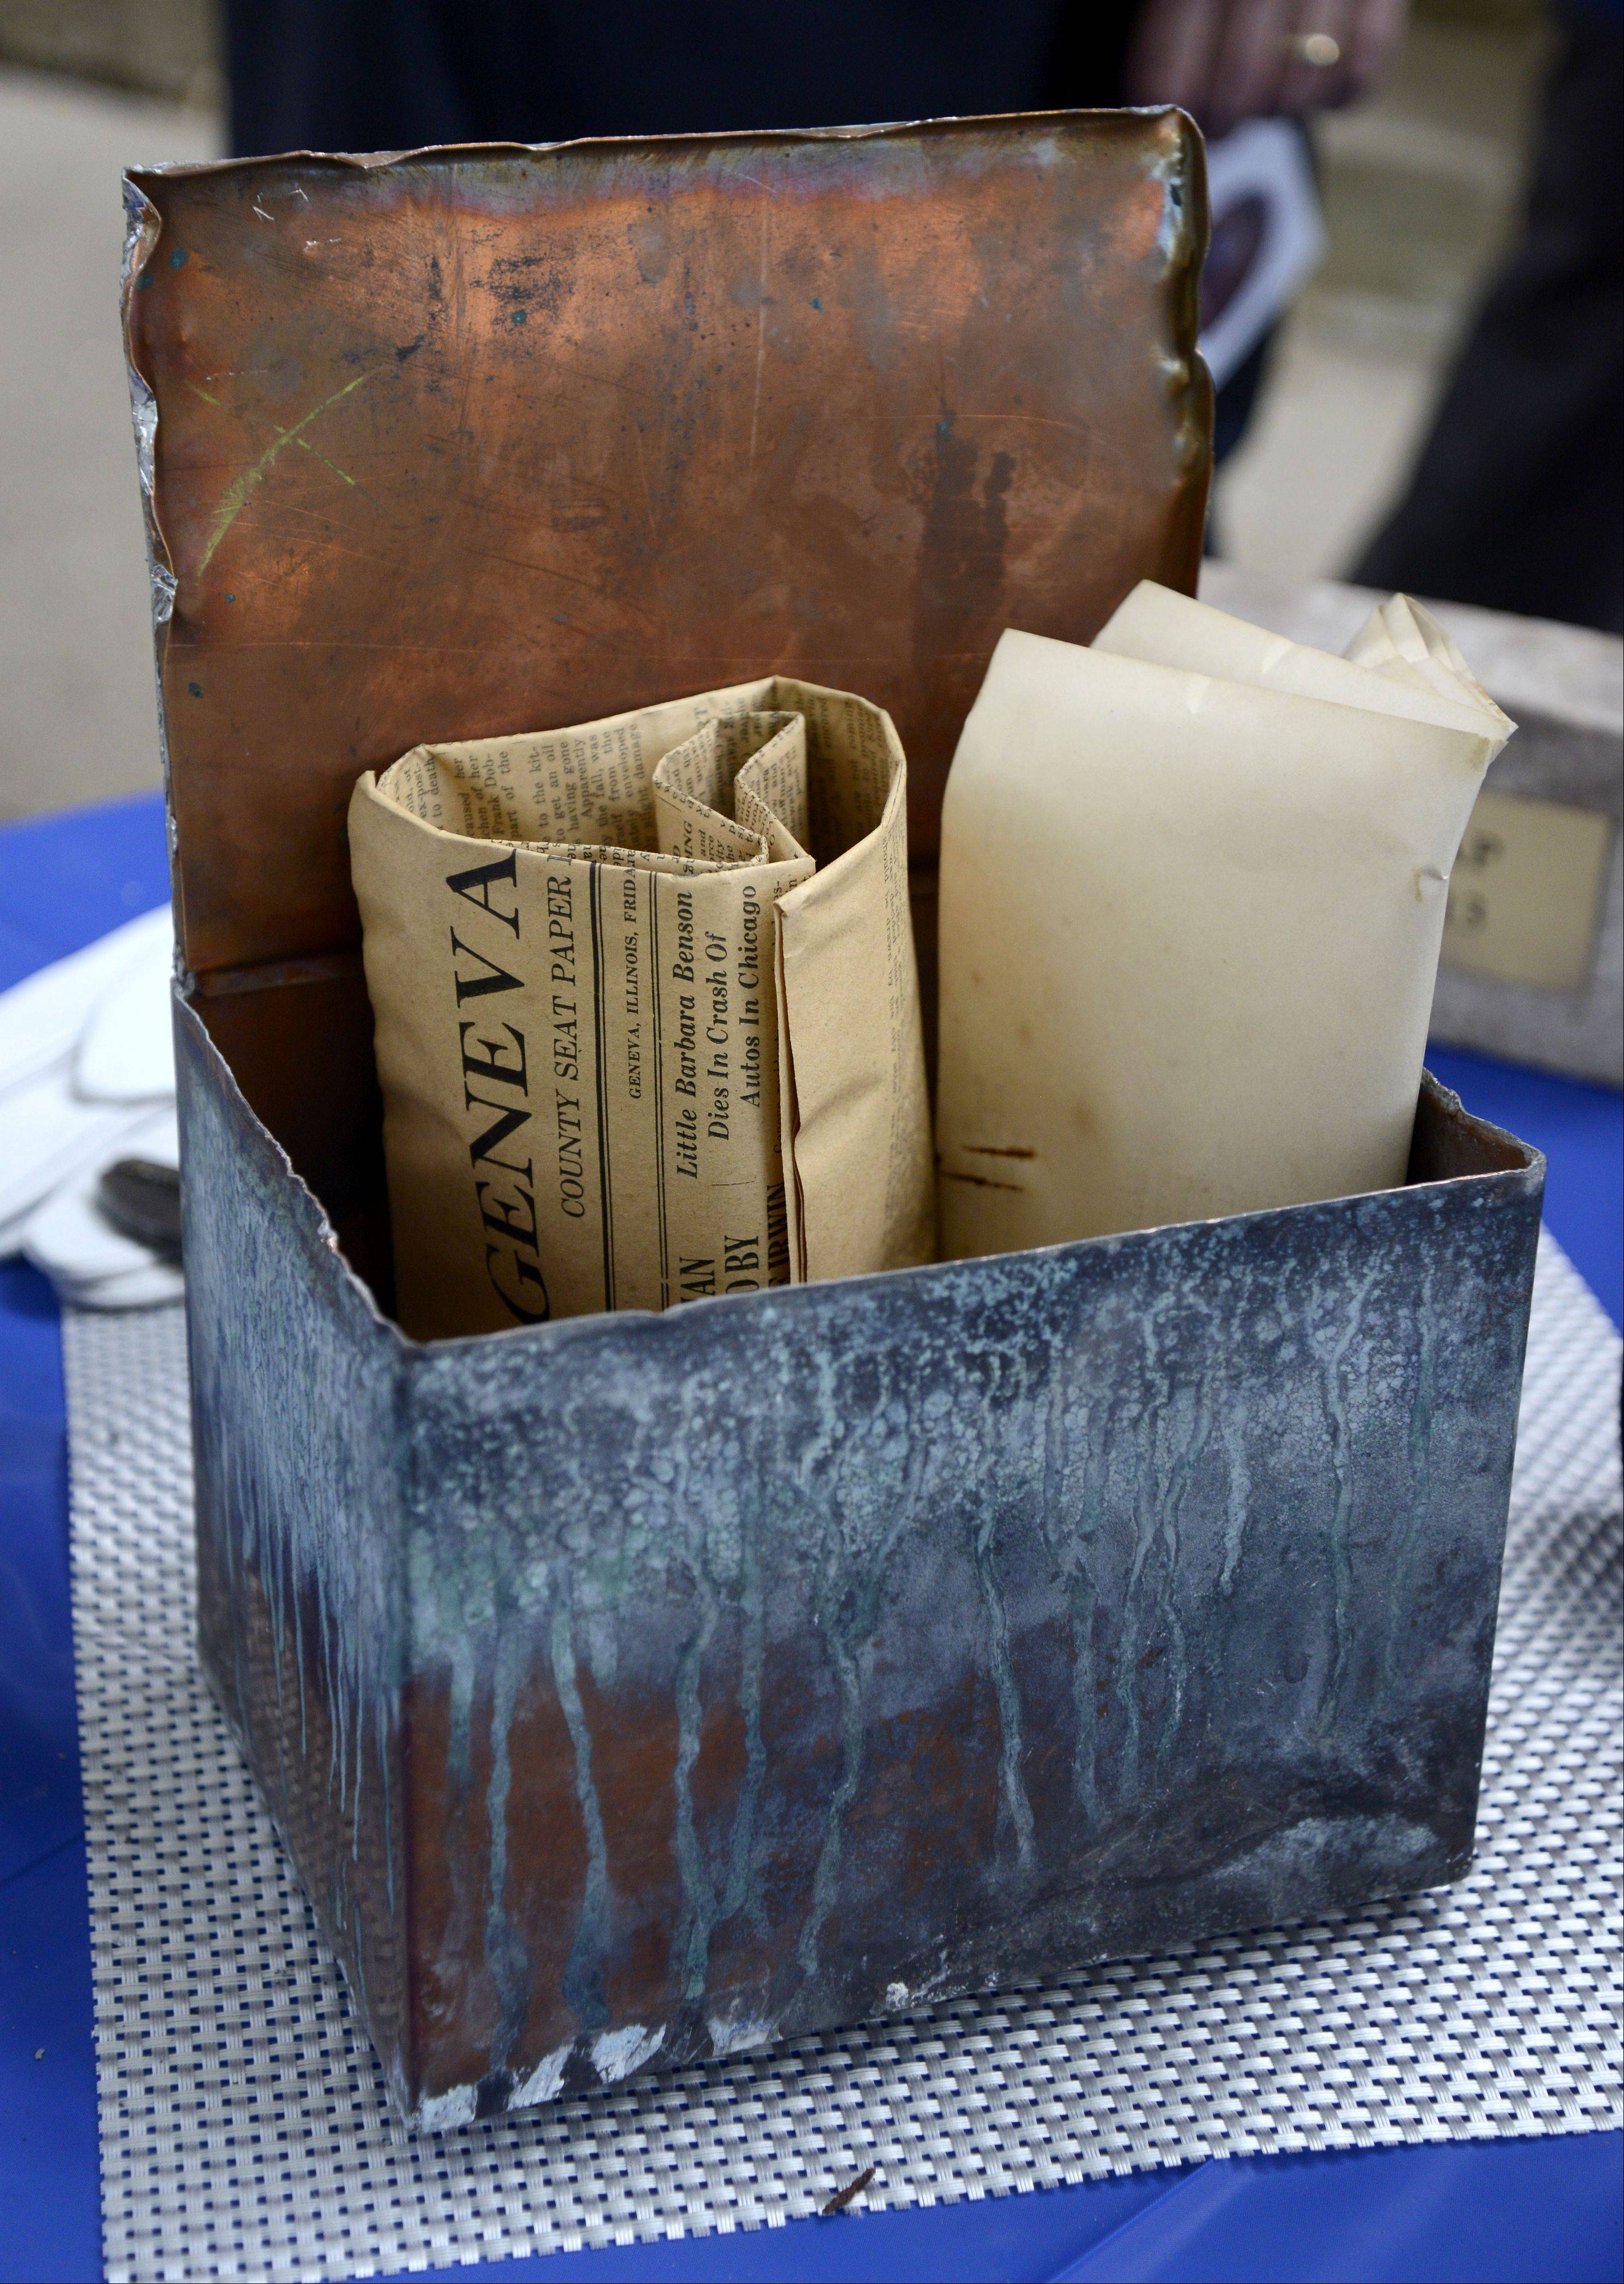 A newspaper dating from Aug. 11, 1922, and the school district's letter of resolution were a few of the items contained in the time capsule dating from 1922 which was stored in a marker stone from the recently razed Coultrap Elementary School in Geneva.